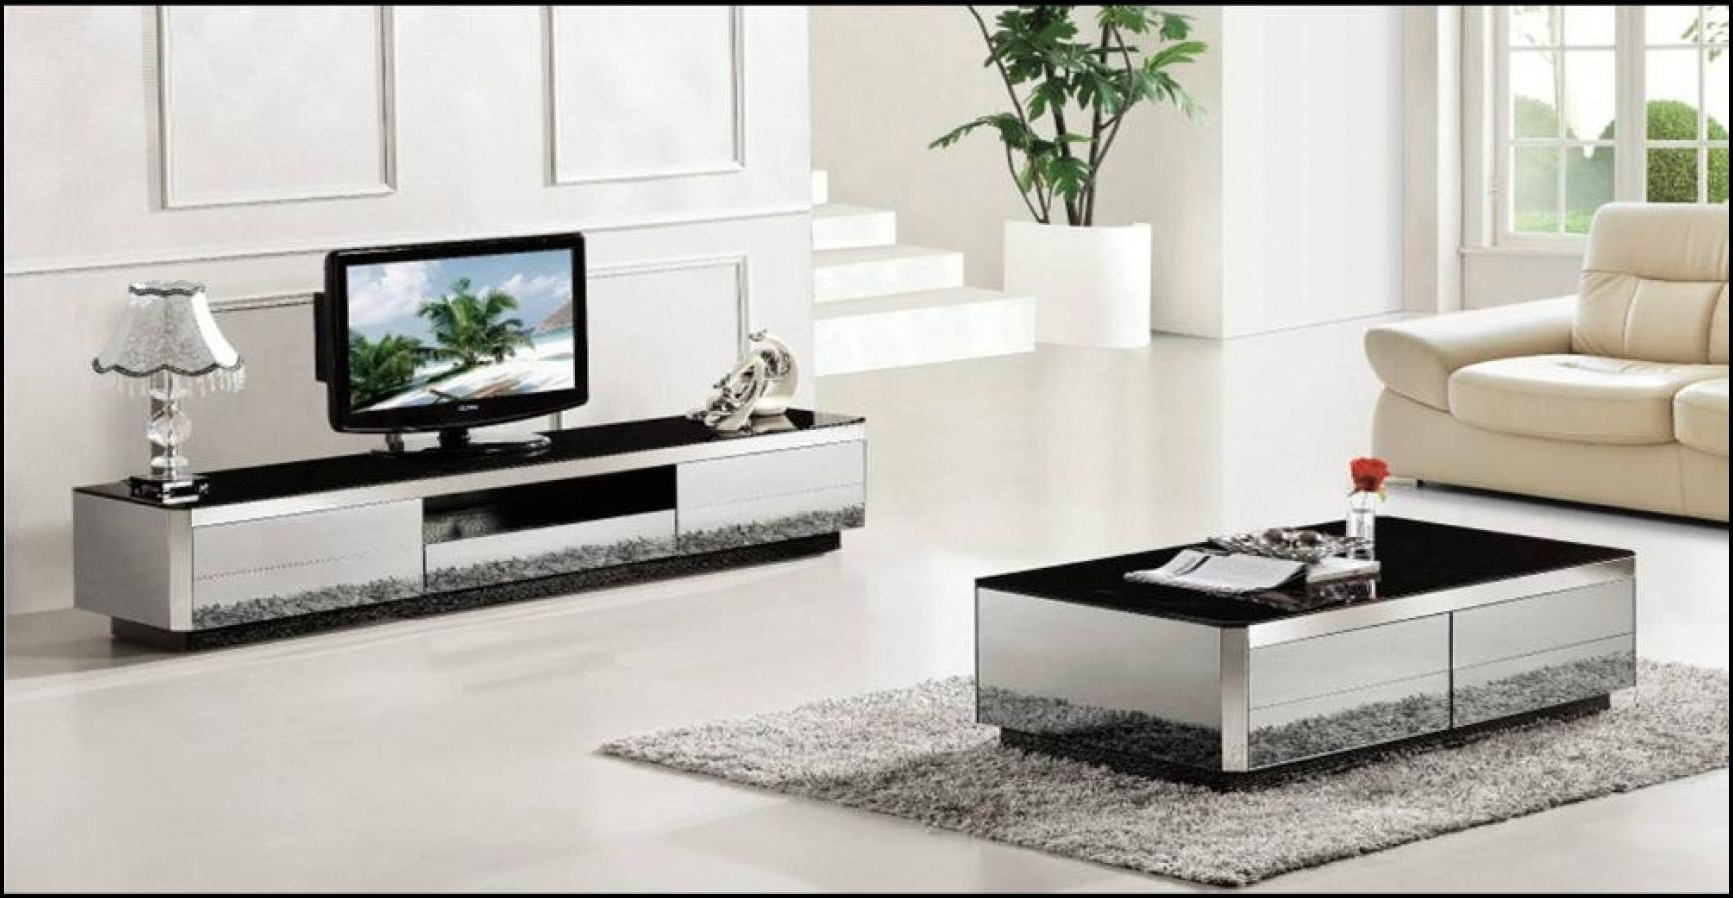 Stand And Coffee Table Set Black Rustic Glass Modern Wood Barn Door For 2018 Tv Cabinets And Coffee Table Sets (View 15 of 20)